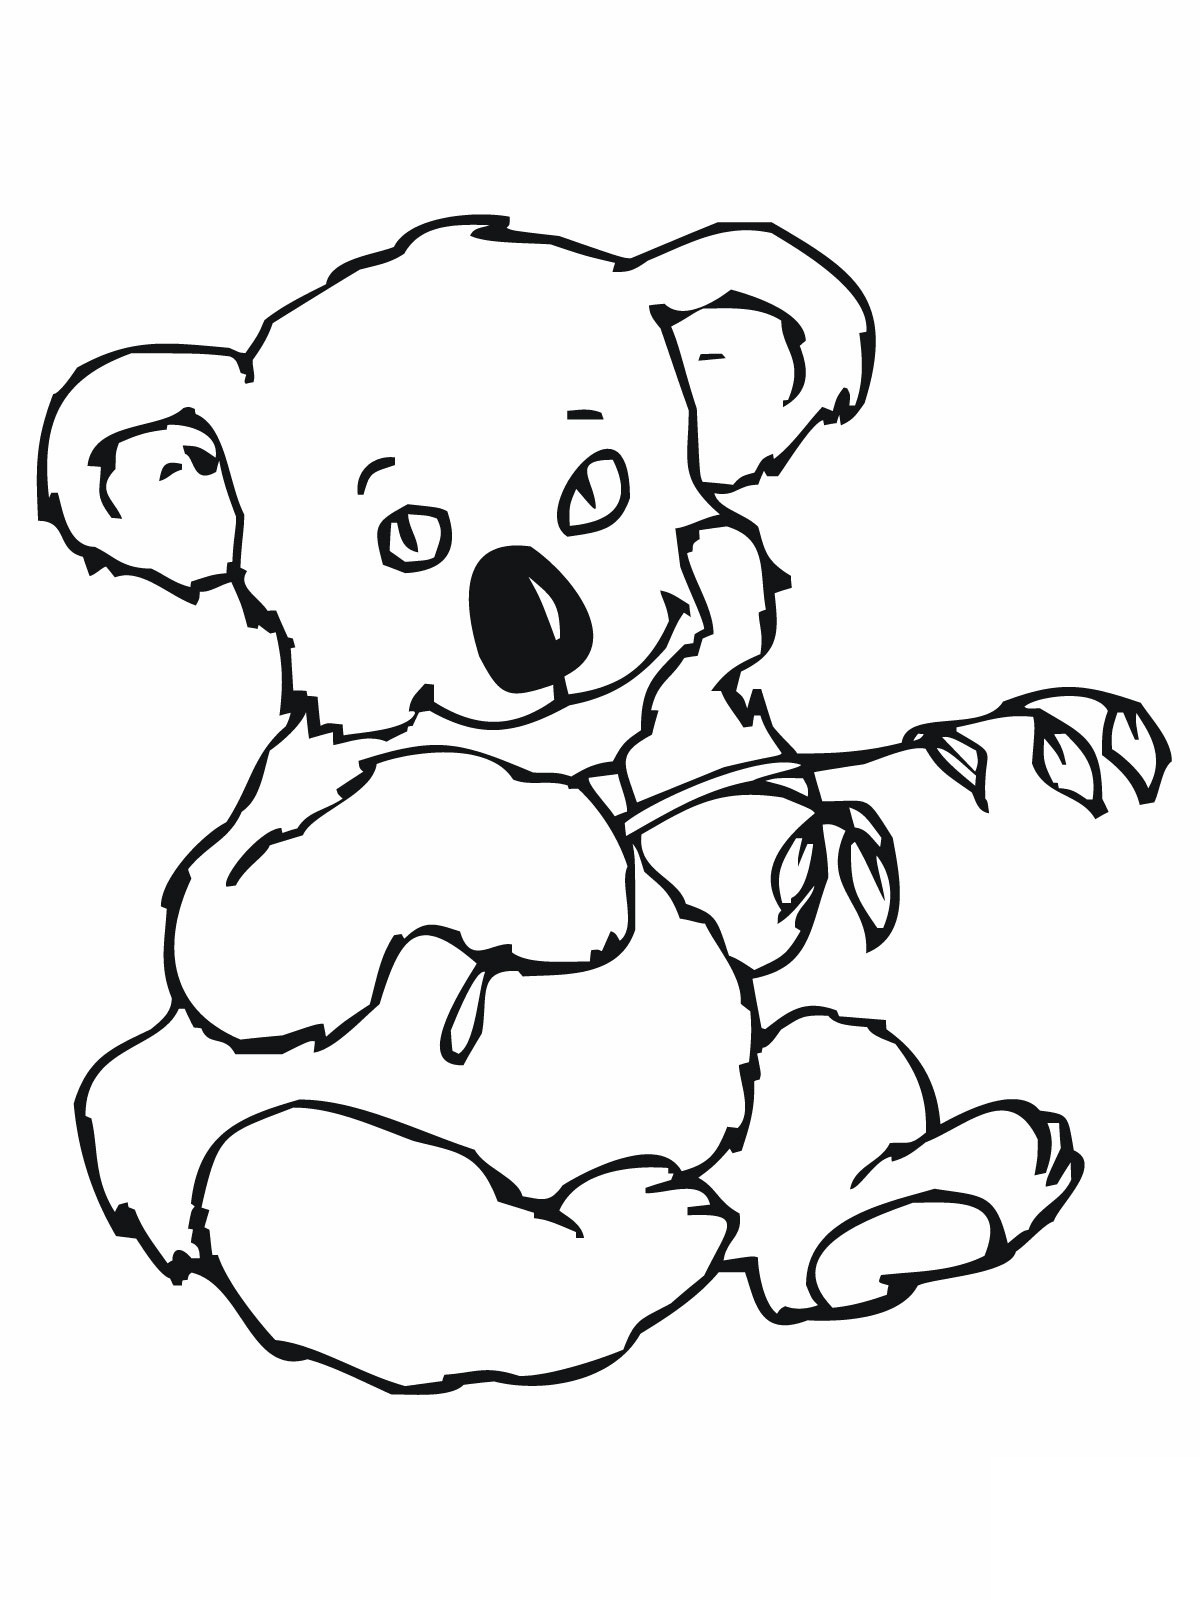 k is for koala bear coloring pages - photo #19